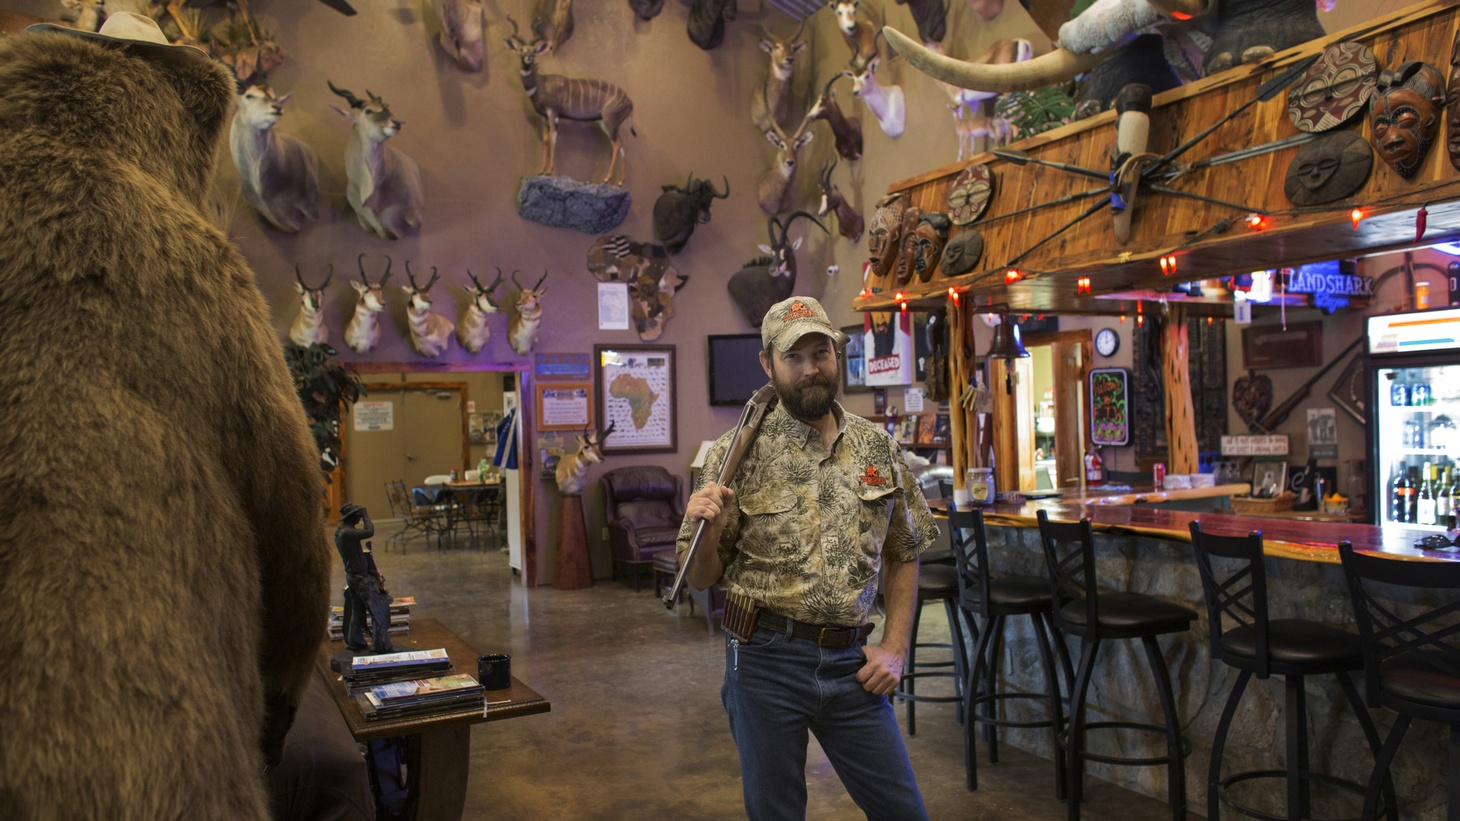 A deep dive into big game hunting -- a world most of us have very strong feelings about...but really know very little.